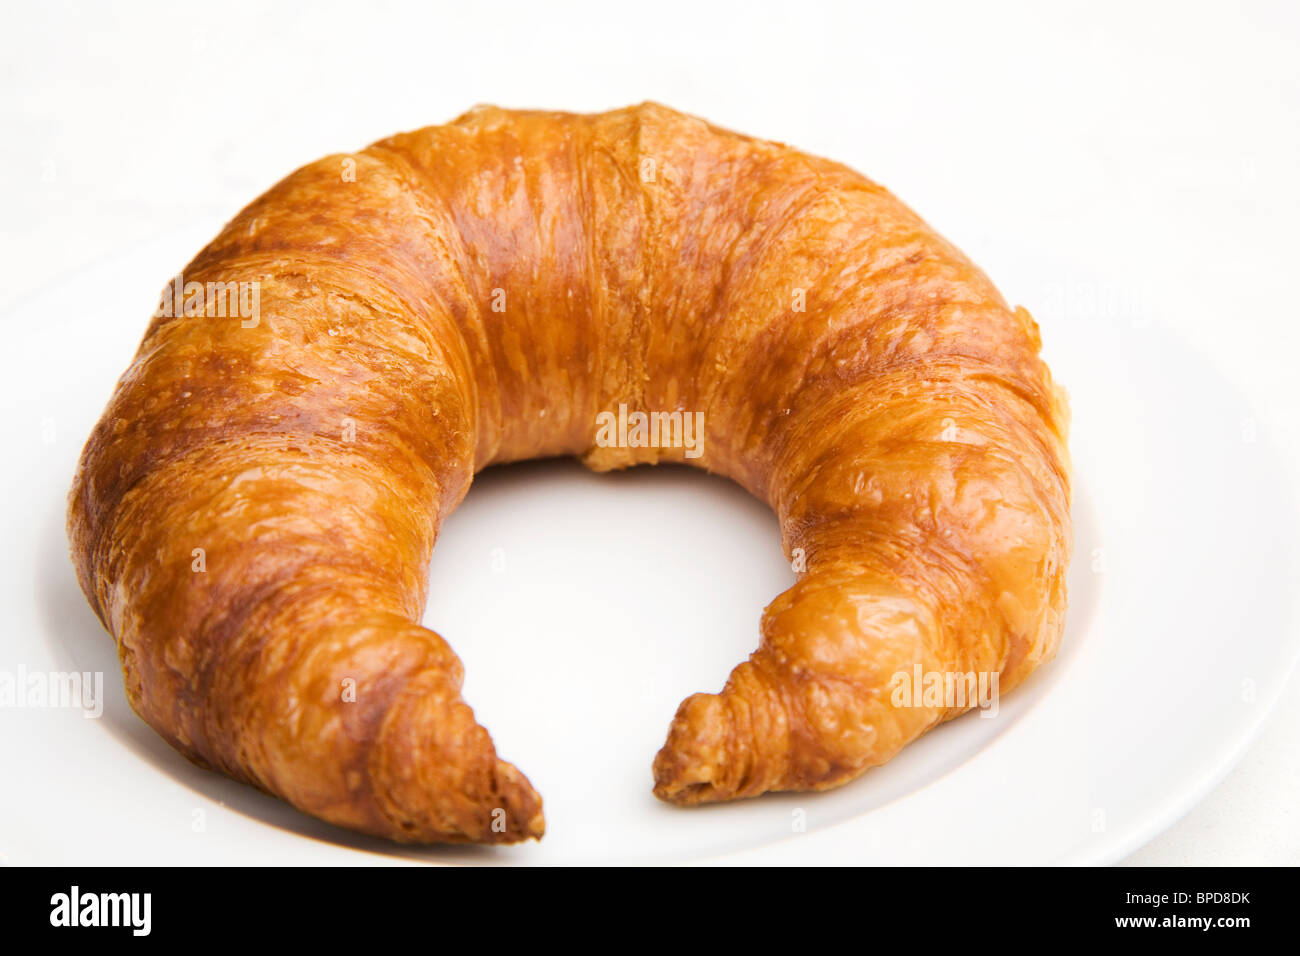 A Bamberger Hornerl (Bamberg Horn), a type of croissant, traditionally served in Bamberg, Germany. - Stock Image